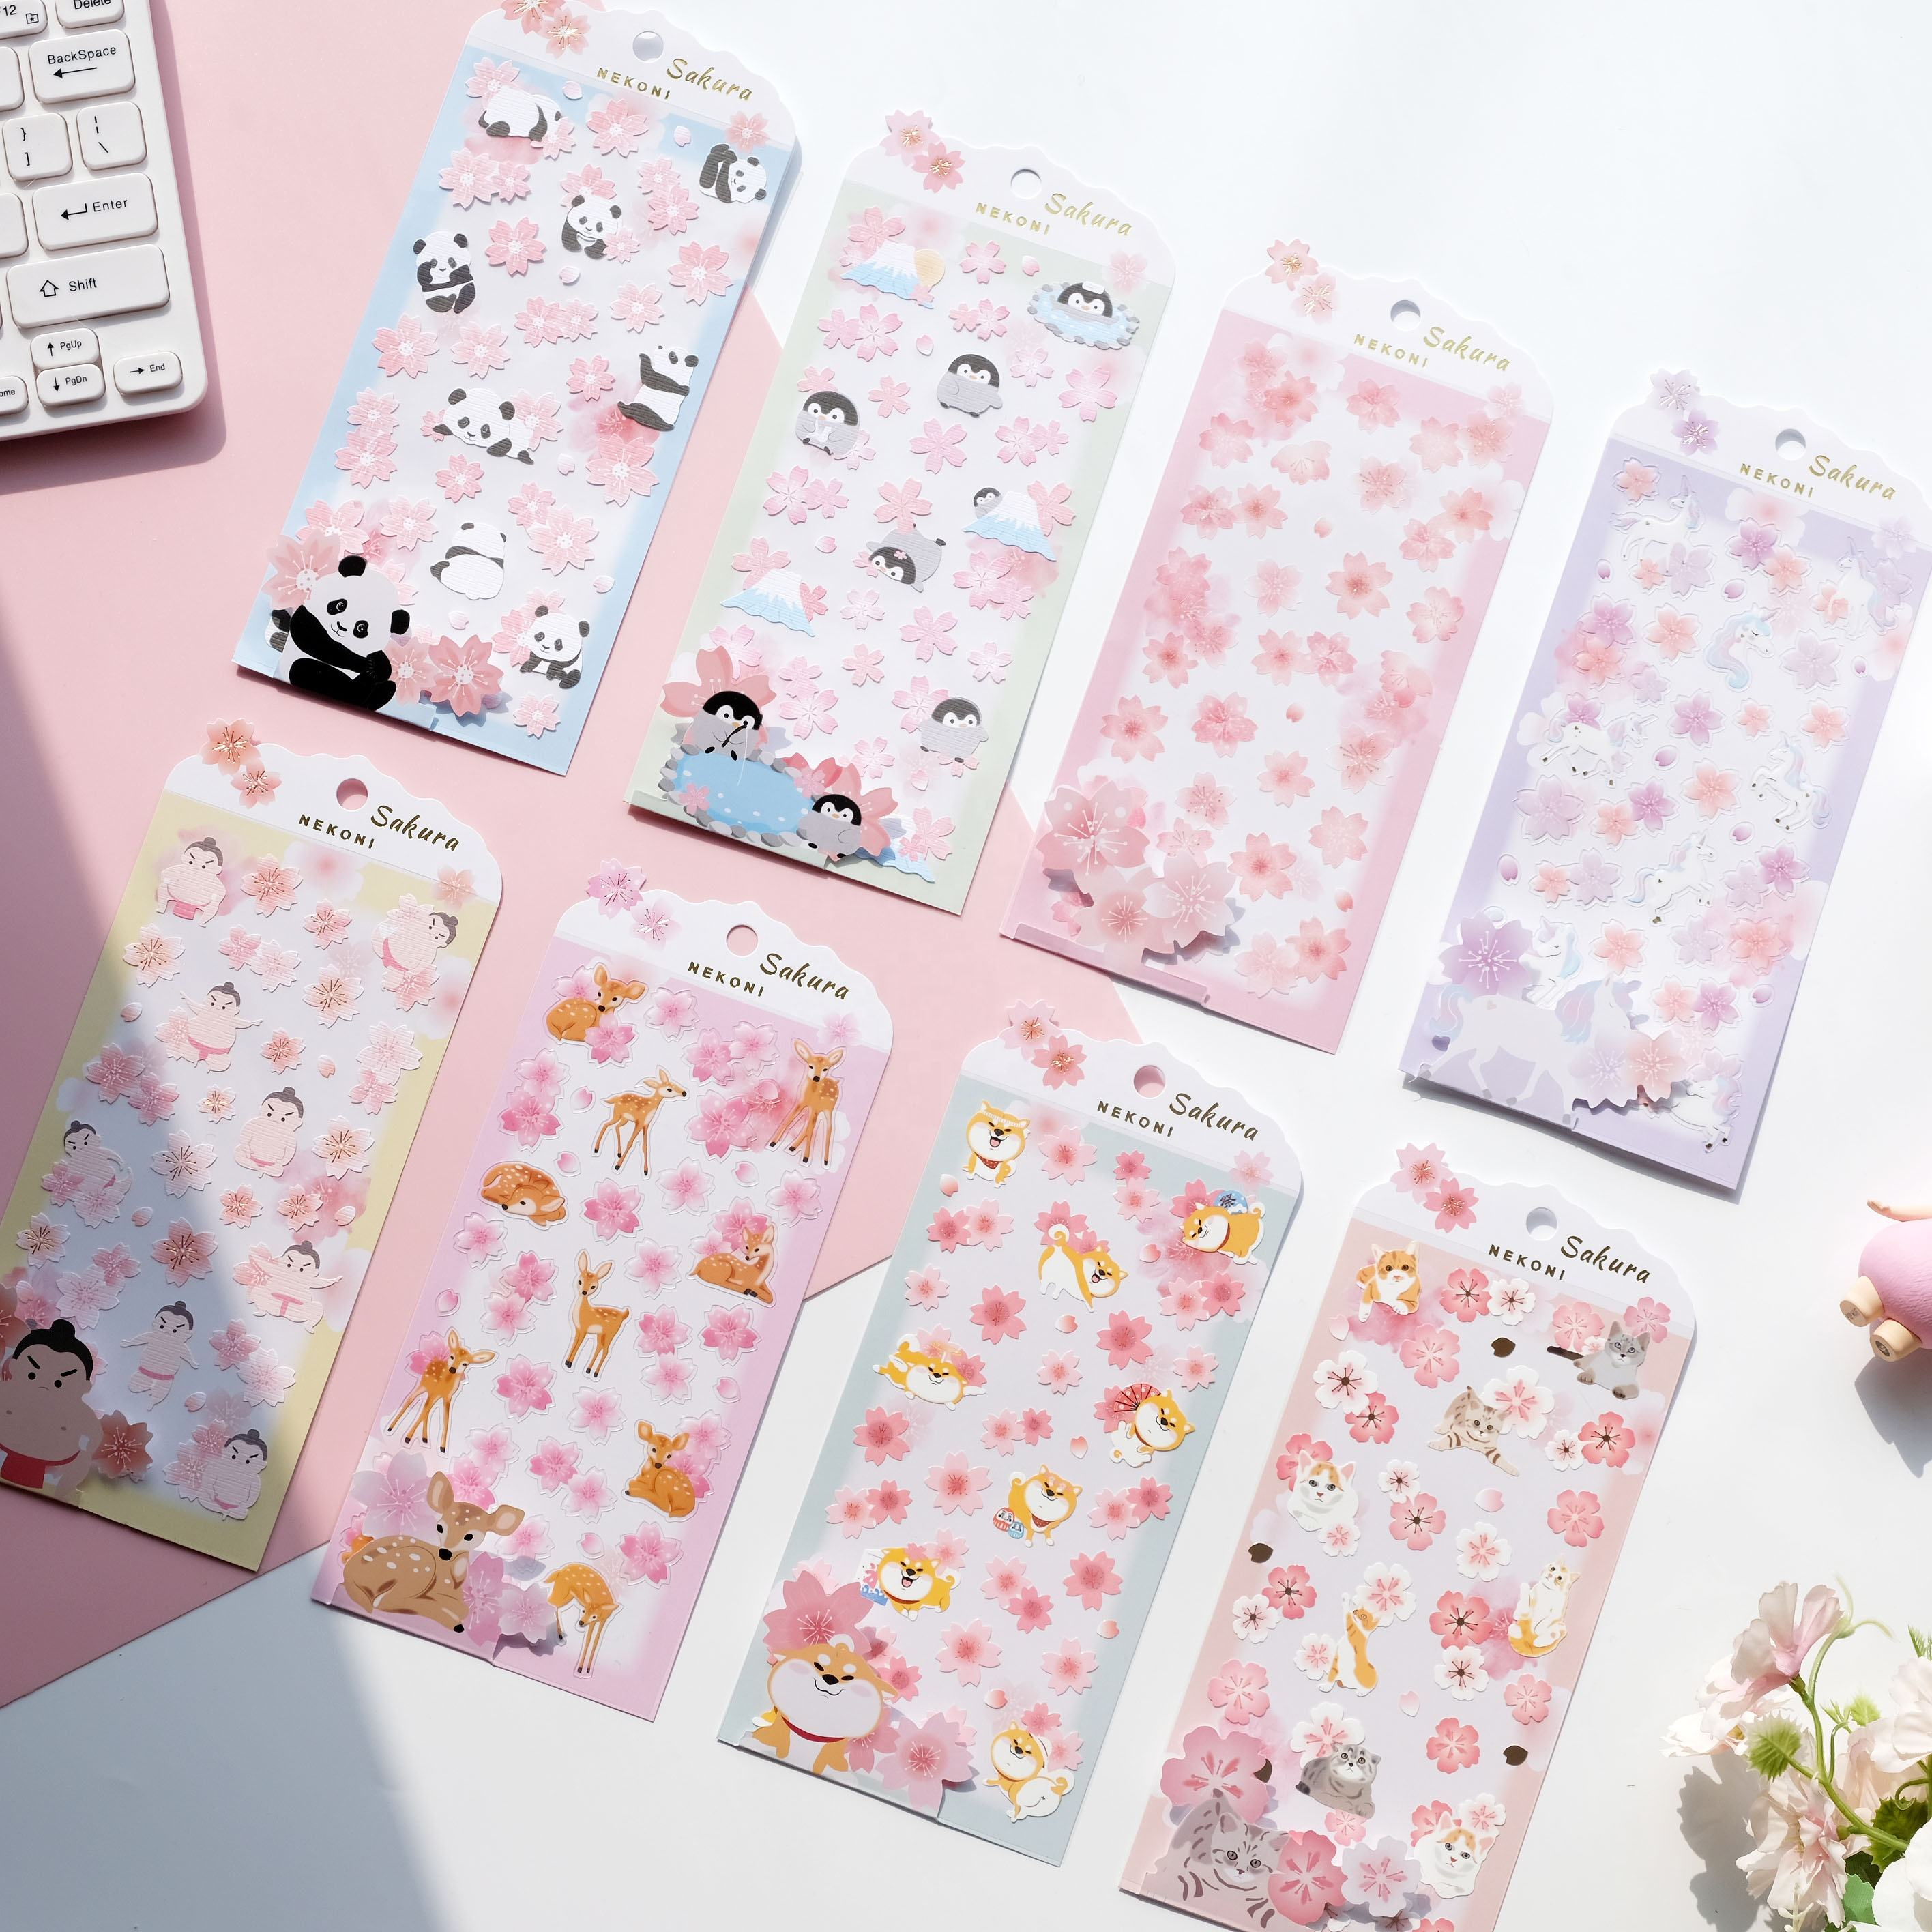 Nekoni Original Design Cherry Blossom Festival Sakura Washi stickers